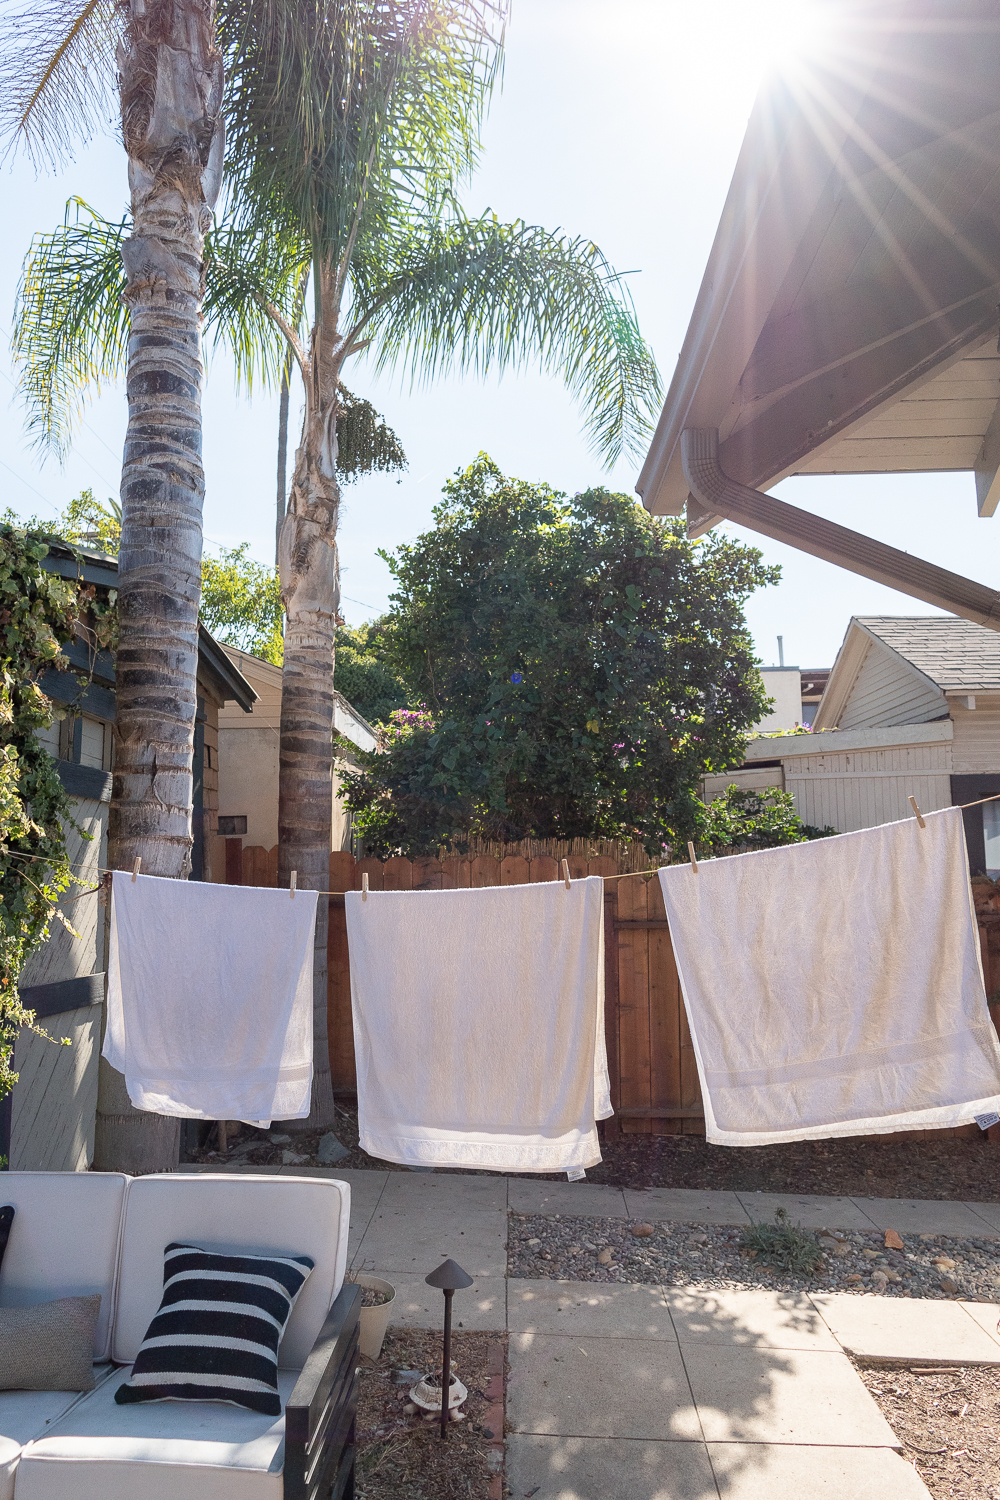 Line Drying Clothes - How To and the easiest trick- zero waste - The Gold Hive.jpg